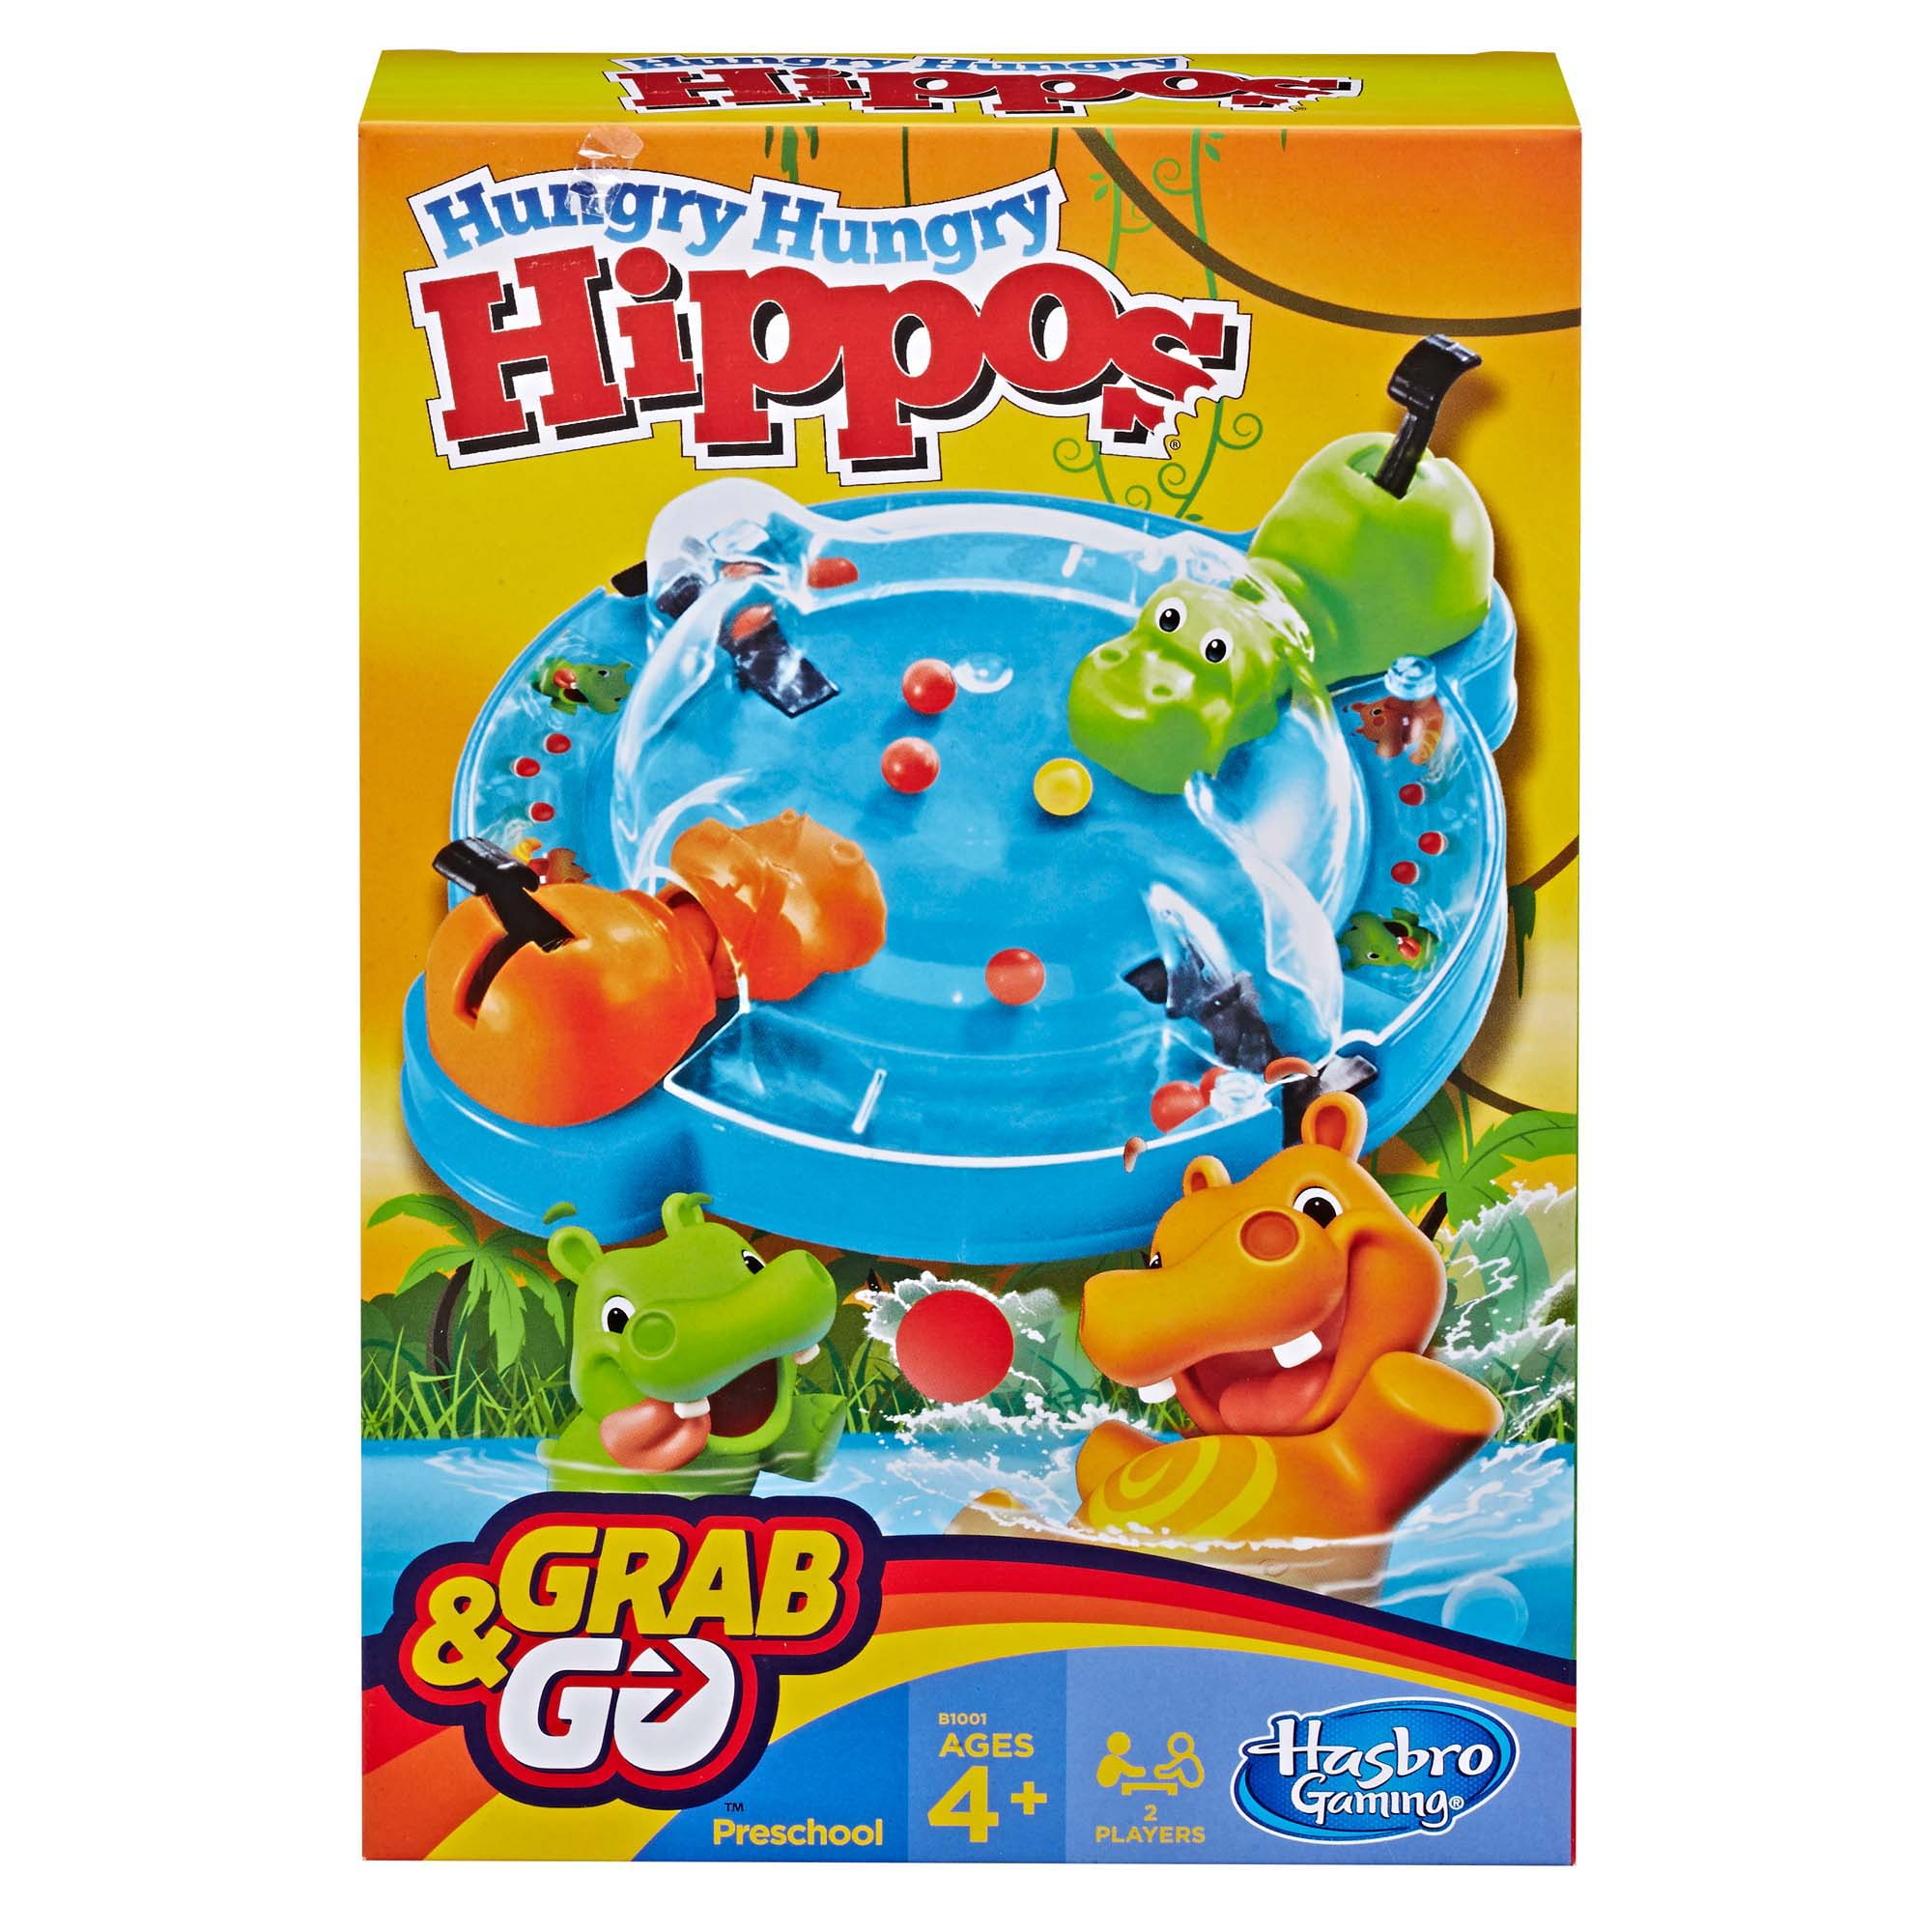 Hungry Hungry Hippos Grab & Go Game